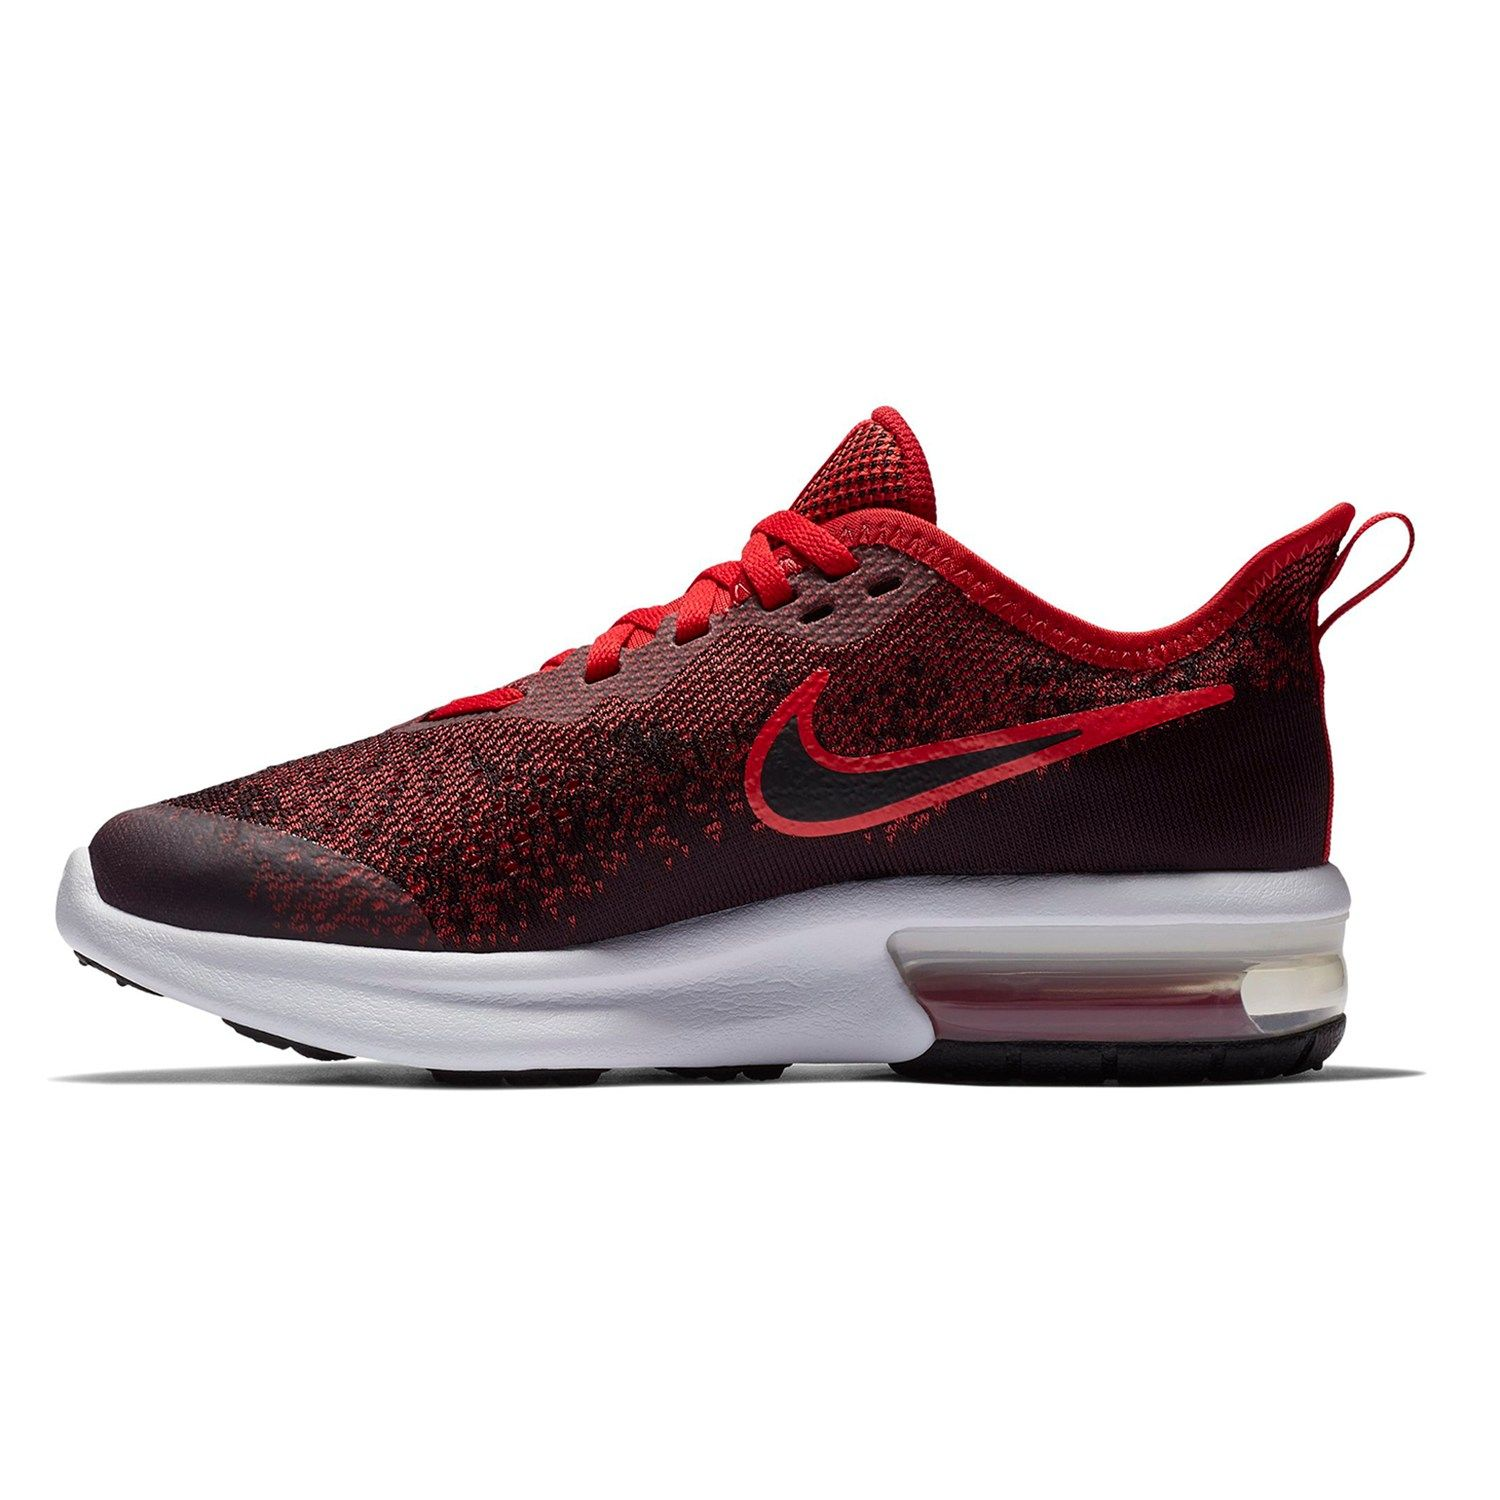 Nike Air Max Sequent 4 Grade School Boys' Sneakers   Nike